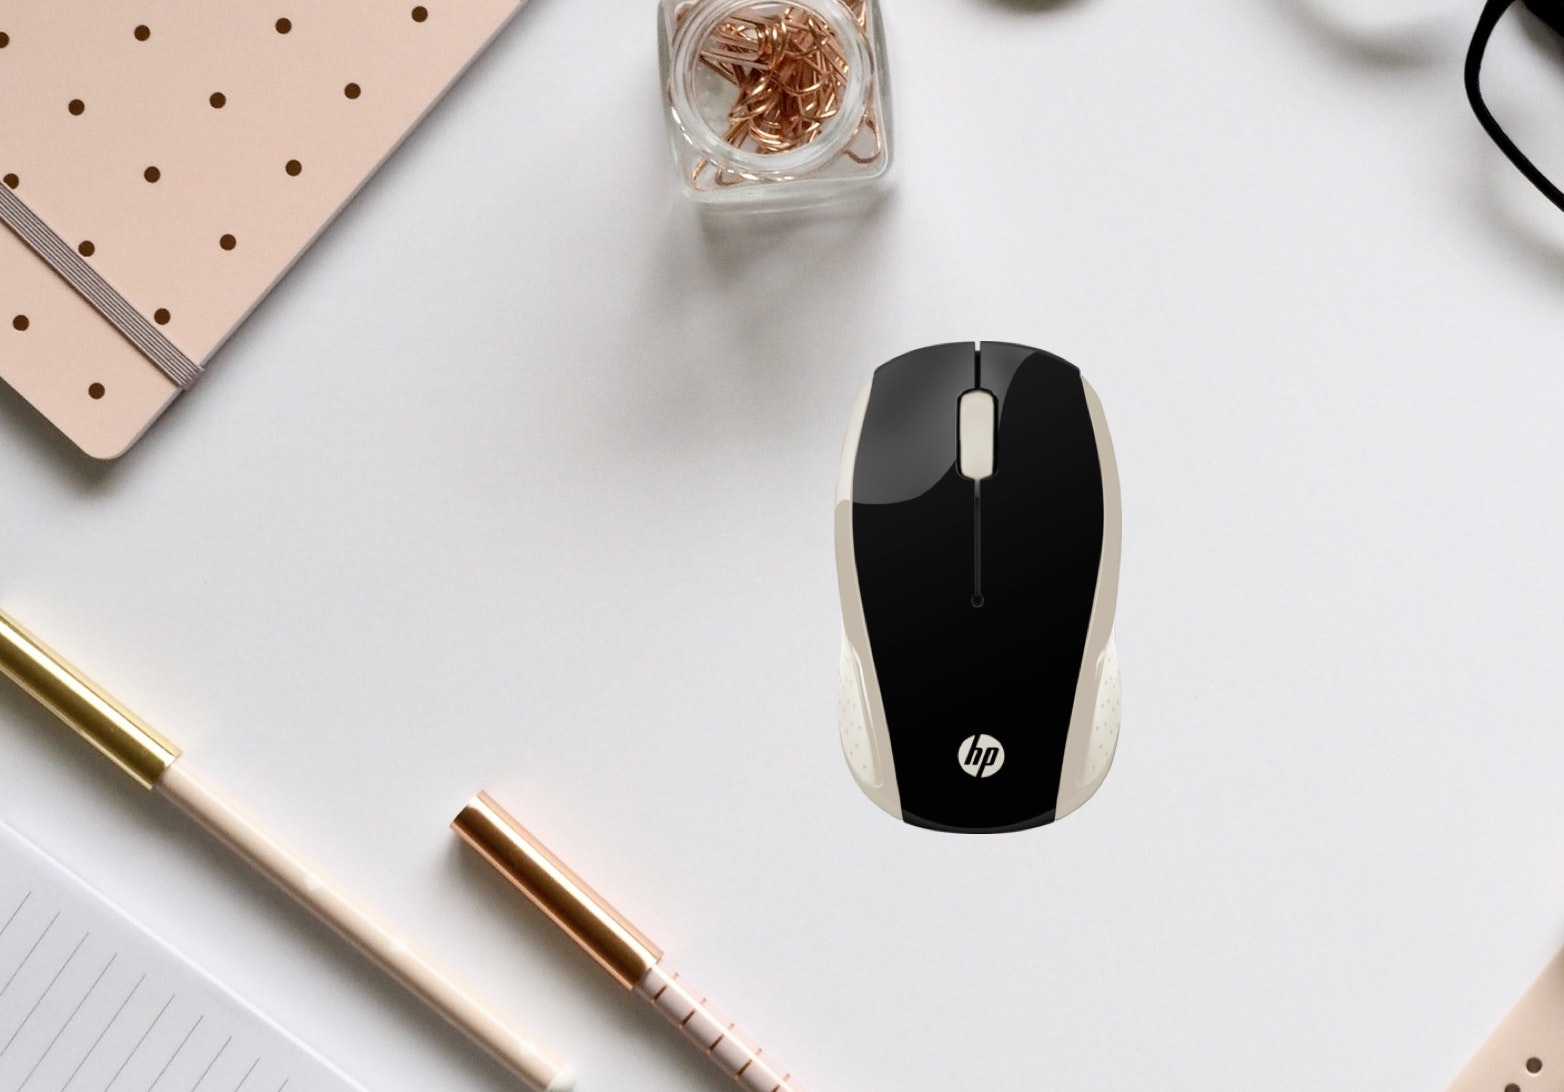 HP 200 Wireless Optical Mouse